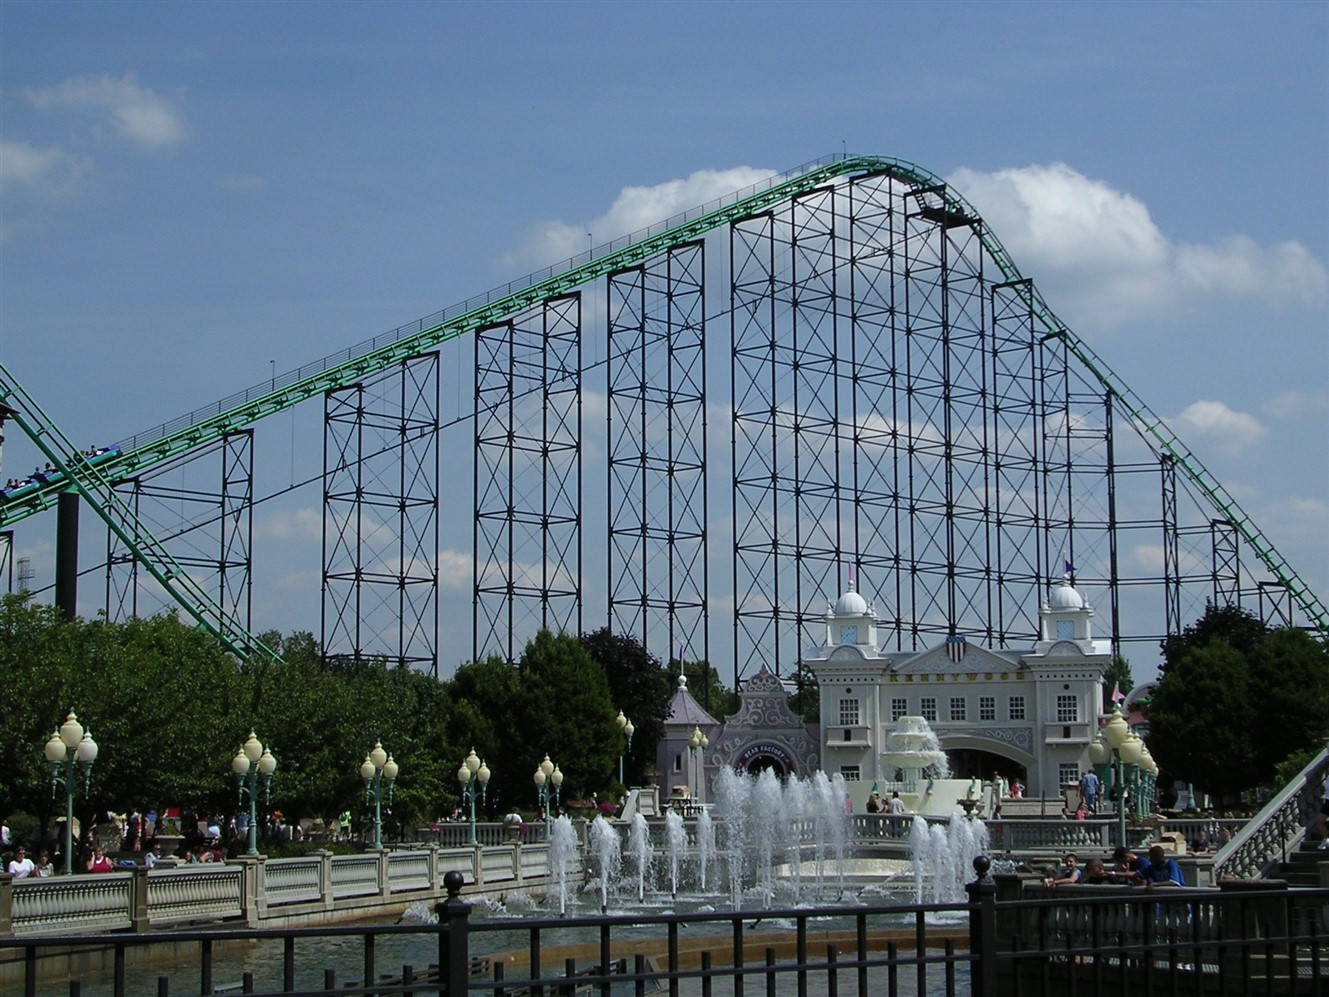 2004 08 Kennywood Park 11.jpg